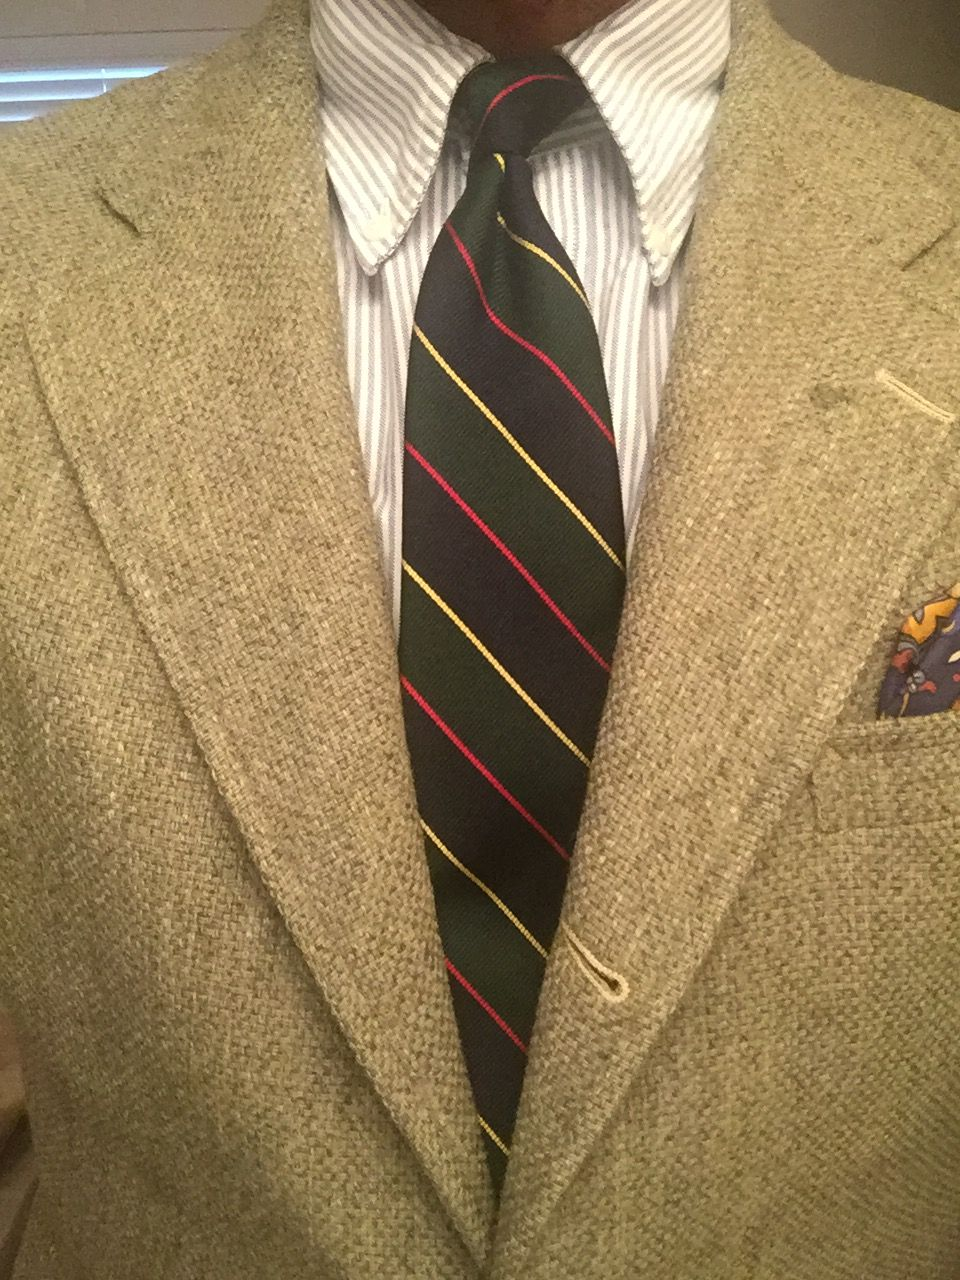 Sage green 3/2 roll Brooks Brothers sport coat, Argyle Sutherland tie, &